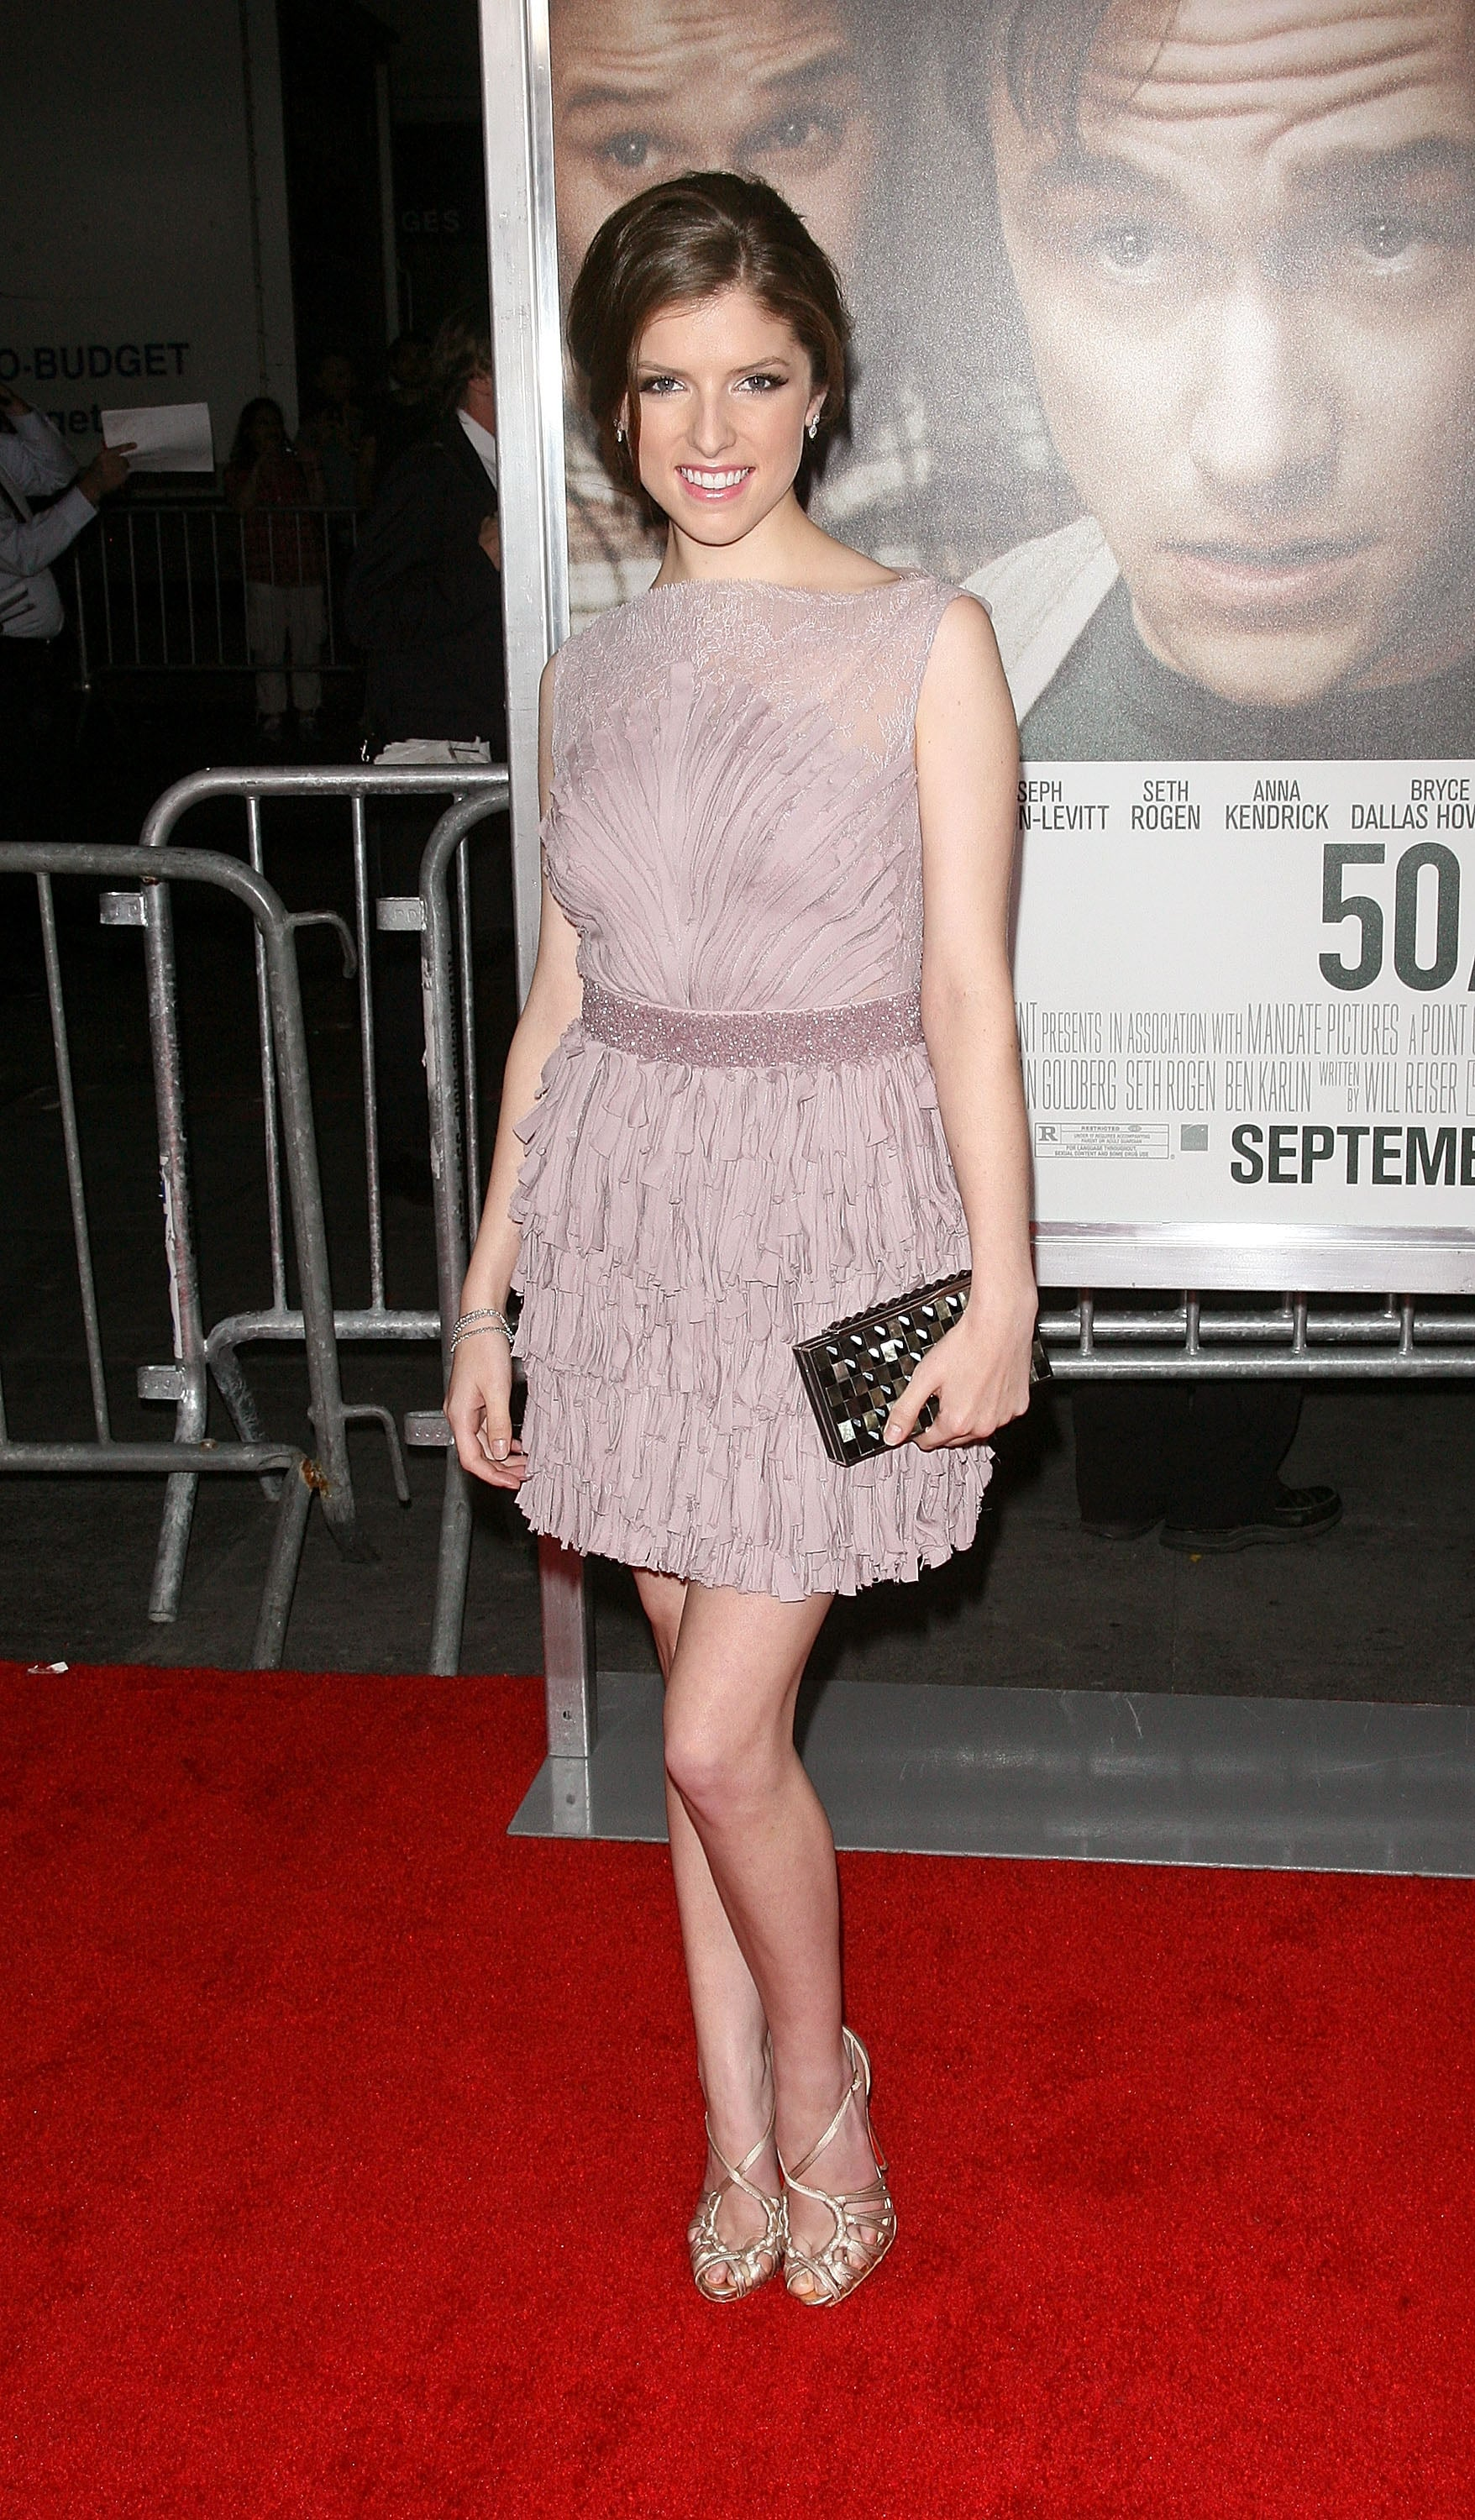 Anna Kendrick at the 50/50 premiere in NYC.